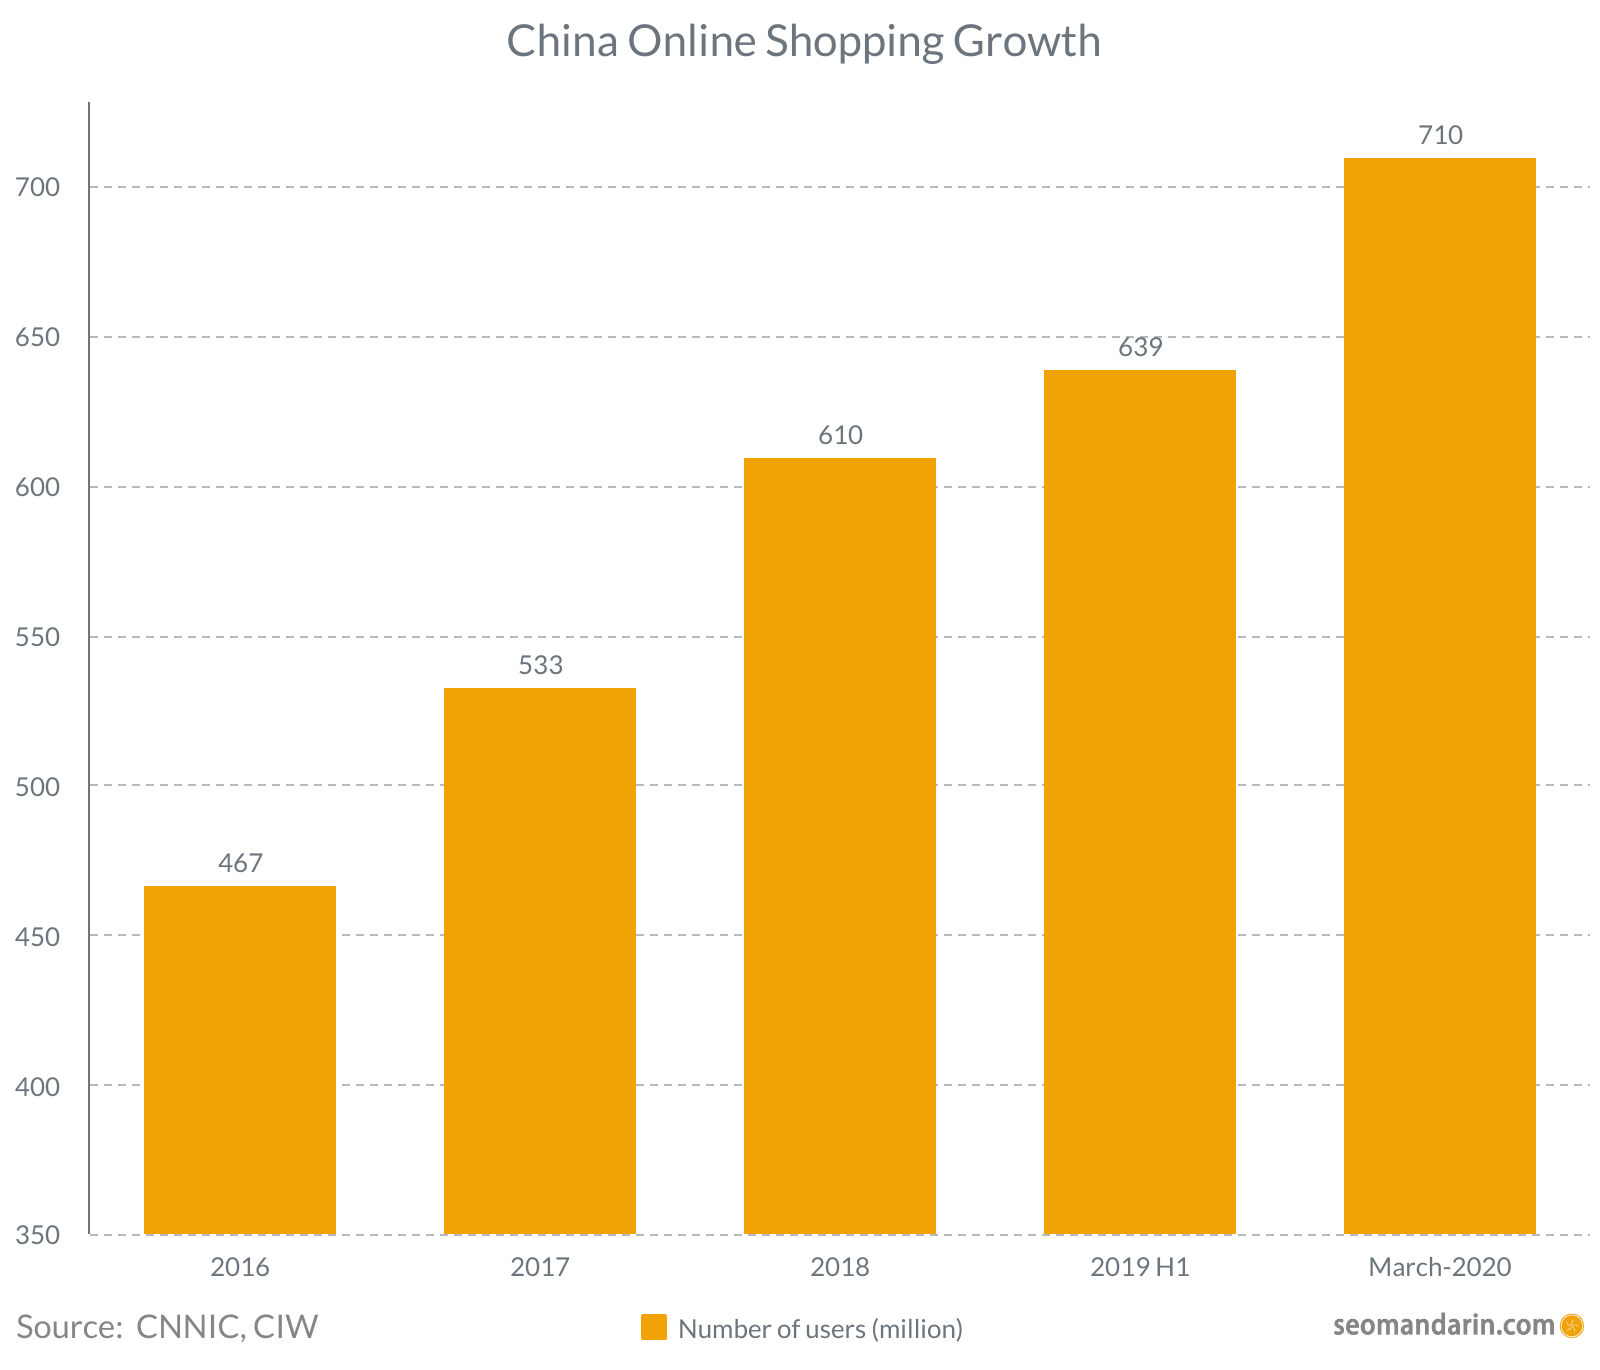 China online shopping growth 2020